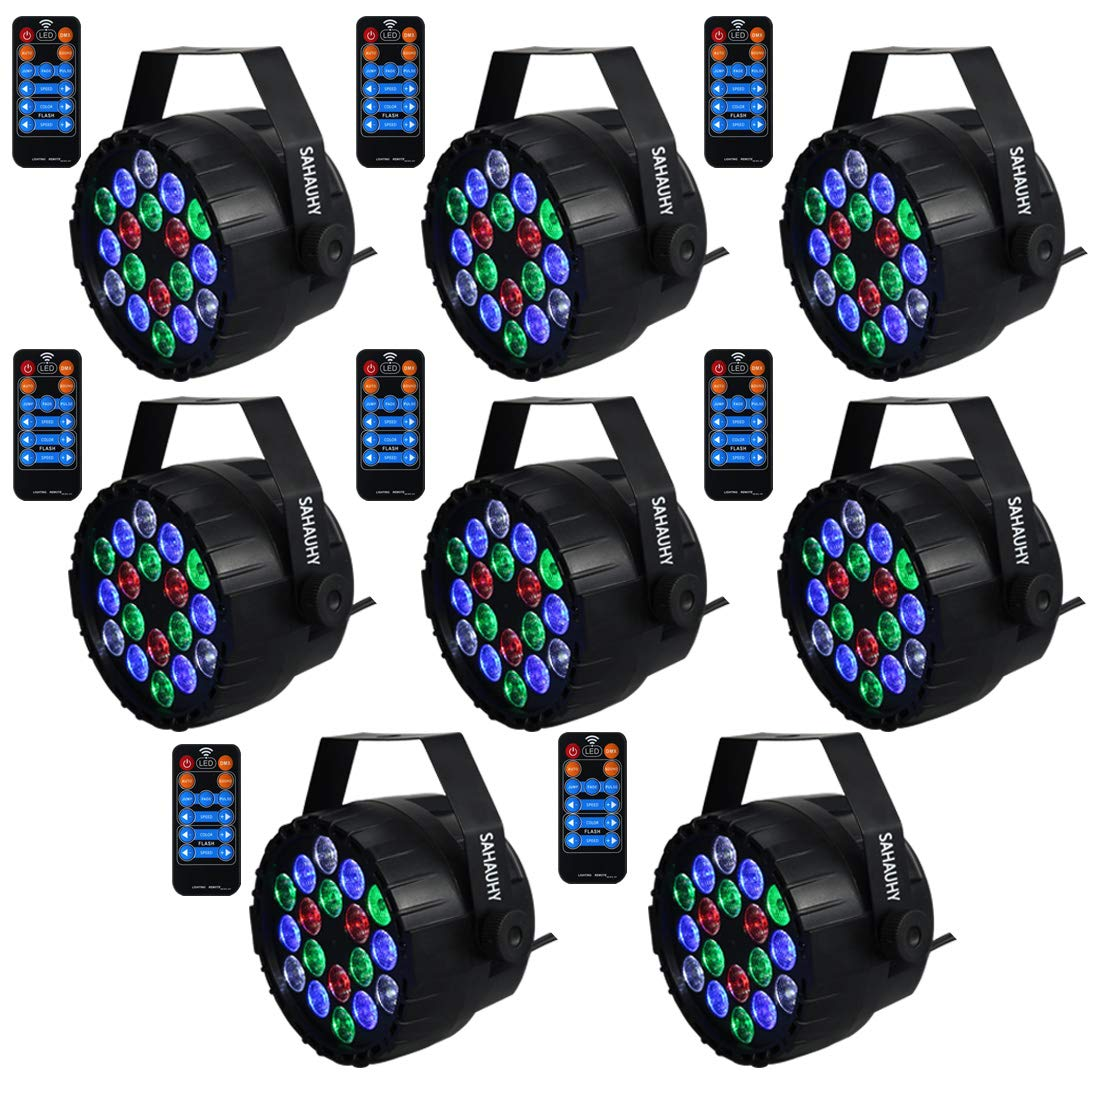 DJ Lights,SAHAUHY Professional Stage Light 8 Channels 9 Modes RGBW Mixed Effect Up Lights Sound Activated or DMX Control with Remote for Party Event Wedding Church(8Packs) by SAHAUHY